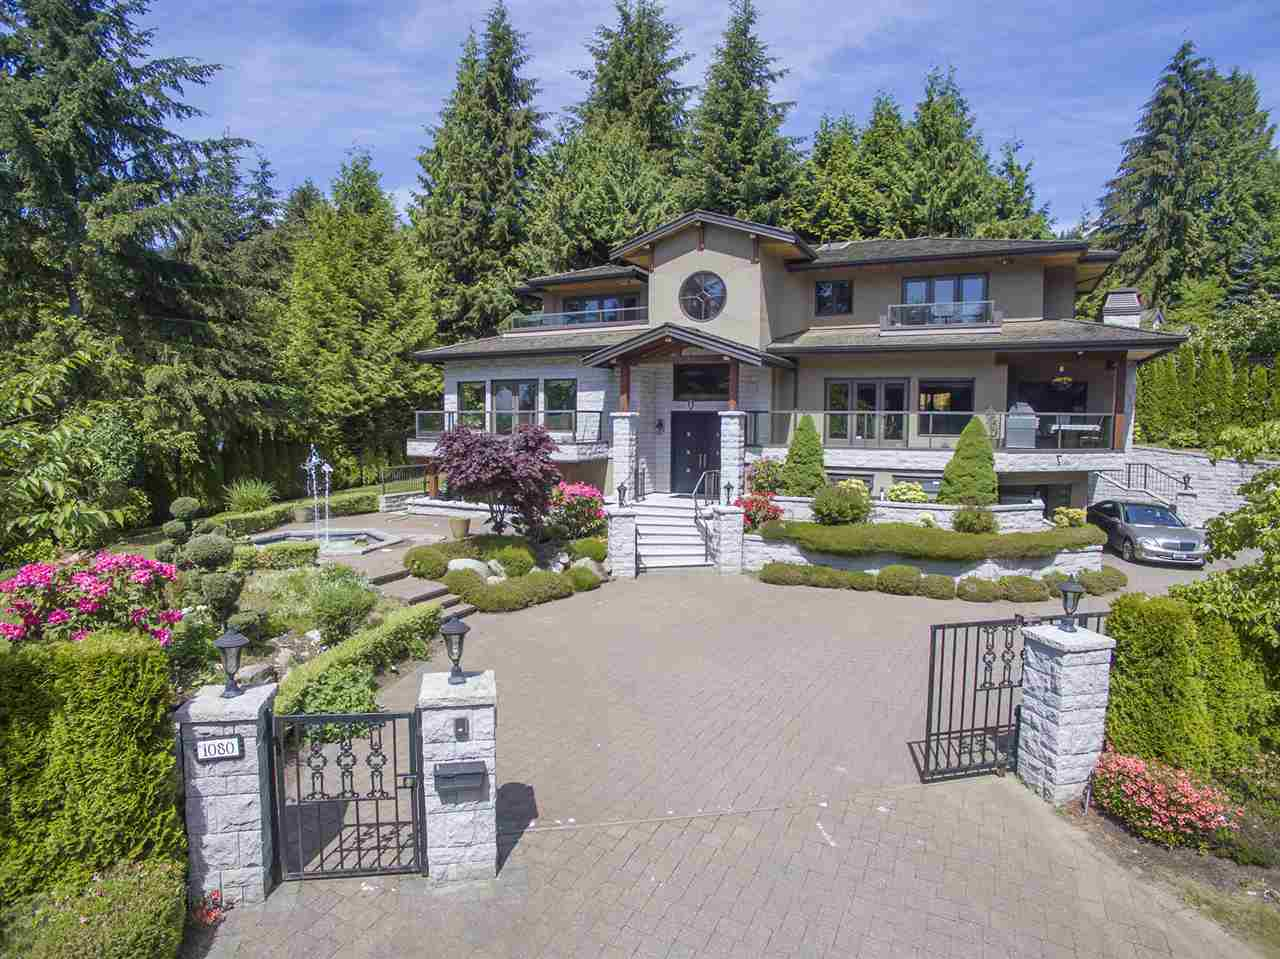 Photo 2: 1080 EYREMOUNT Drive in West Vancouver: British Properties House for sale : MLS® # R2070226